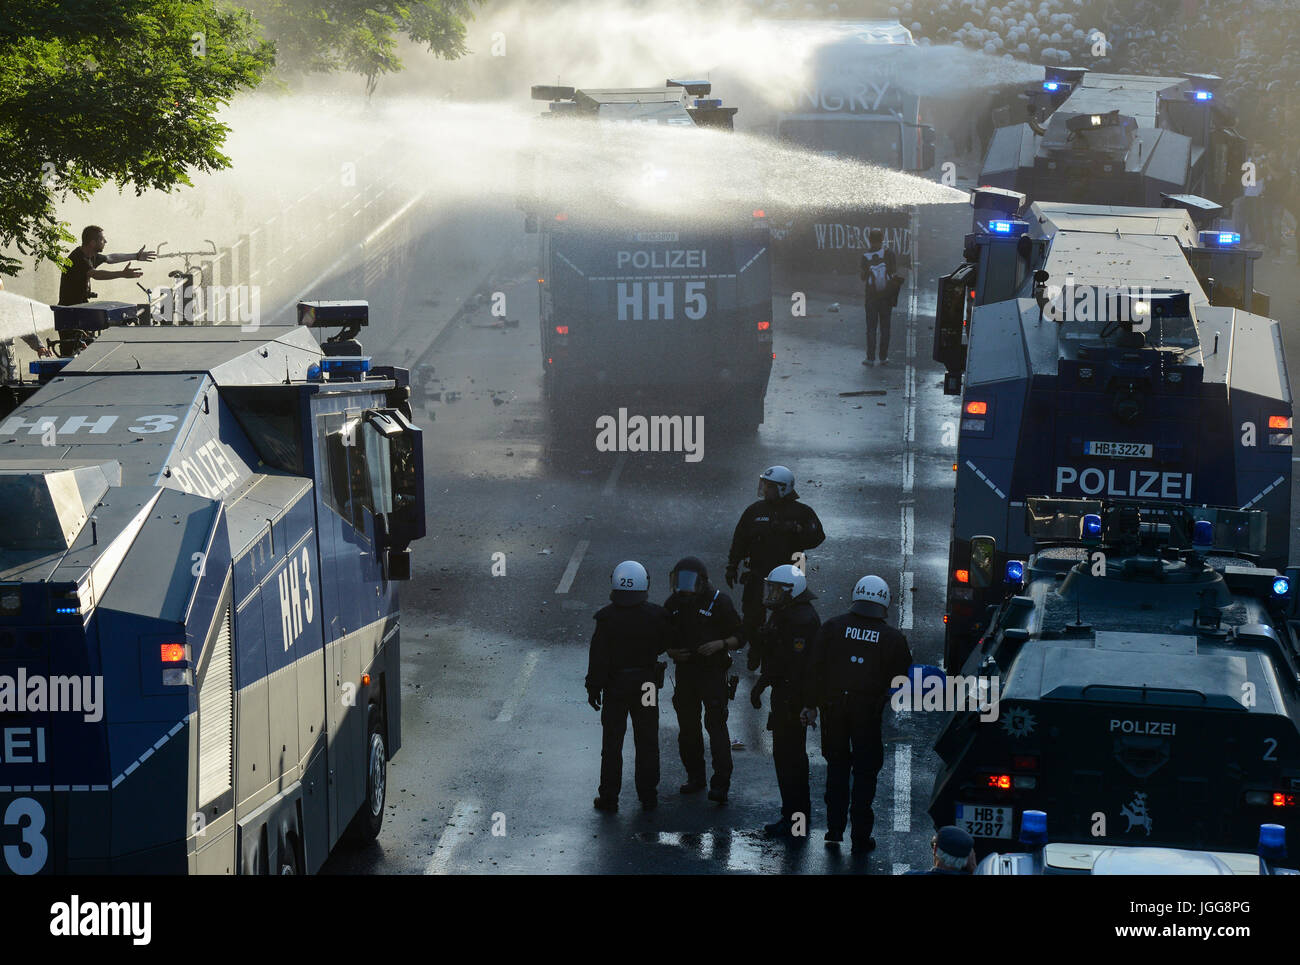 """Hamburg, Germany. 6th July, 2017. GERMANY, Hamburg, protest rally """"WELCOME TO HELL"""" against G-20 summit, tear gas Stock Photo"""